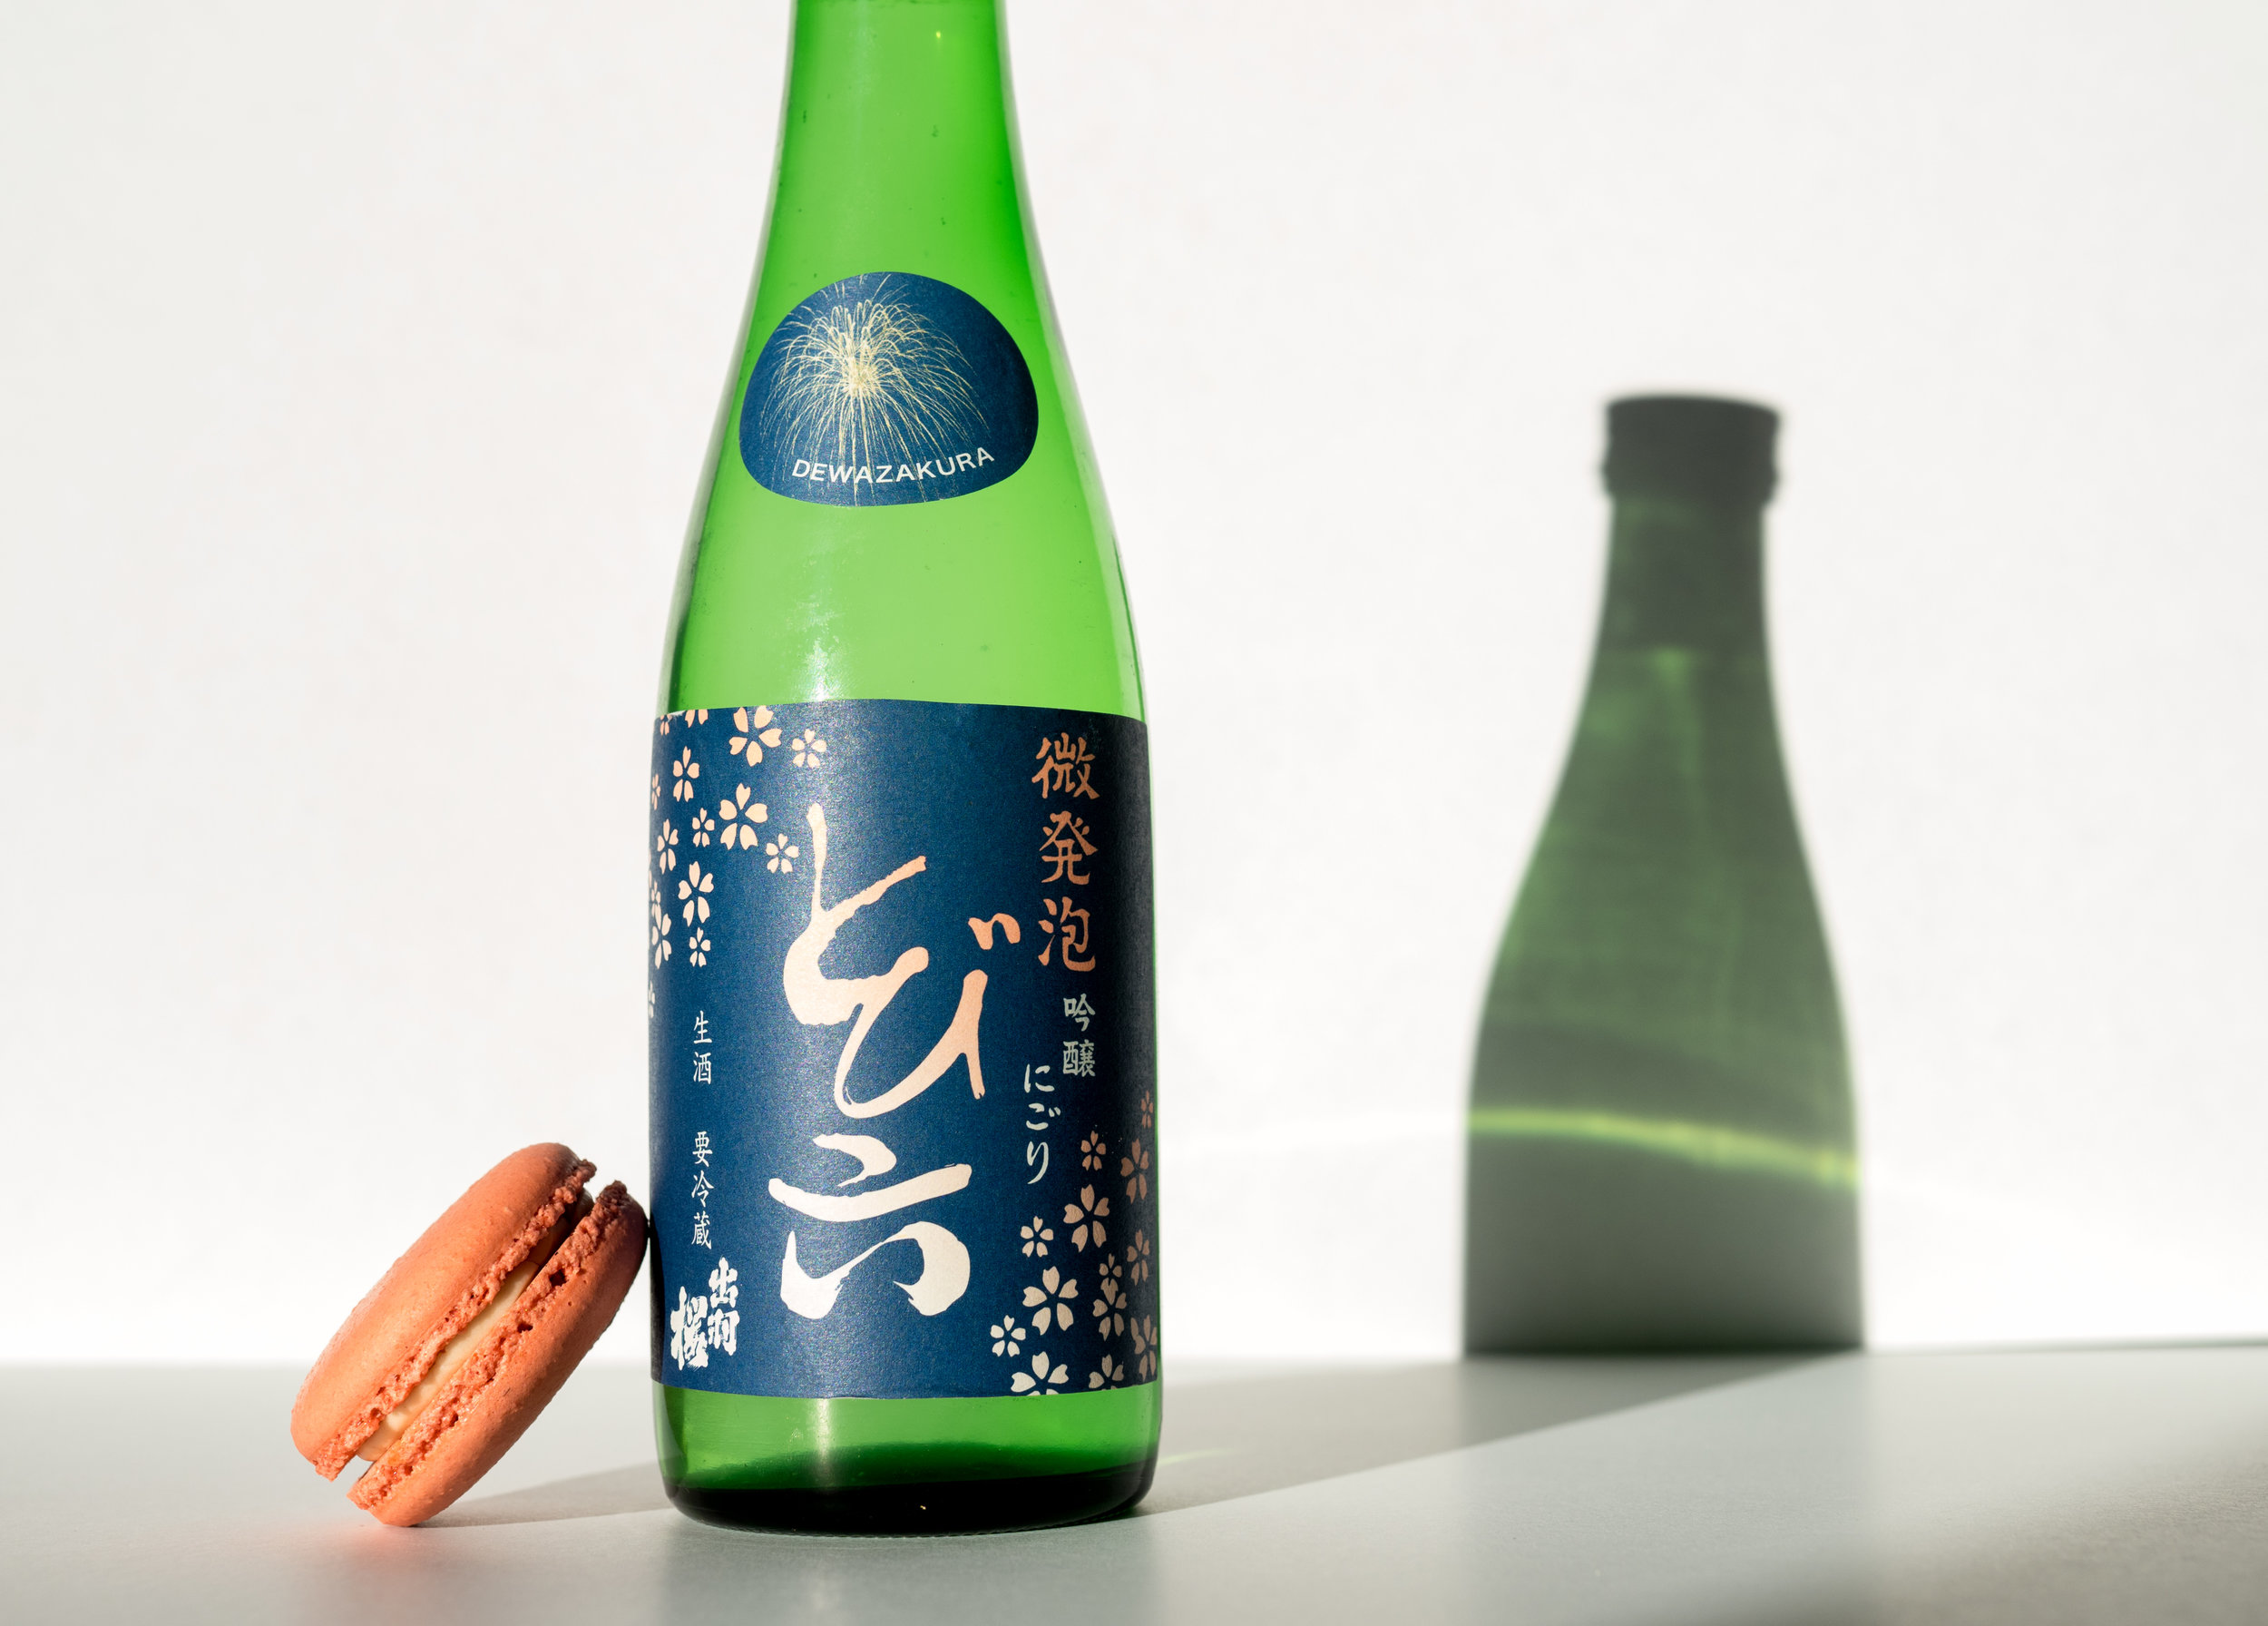 Musings by the Glass - Sake-Confection Hypothesis - Macarons and Sparkling Sake